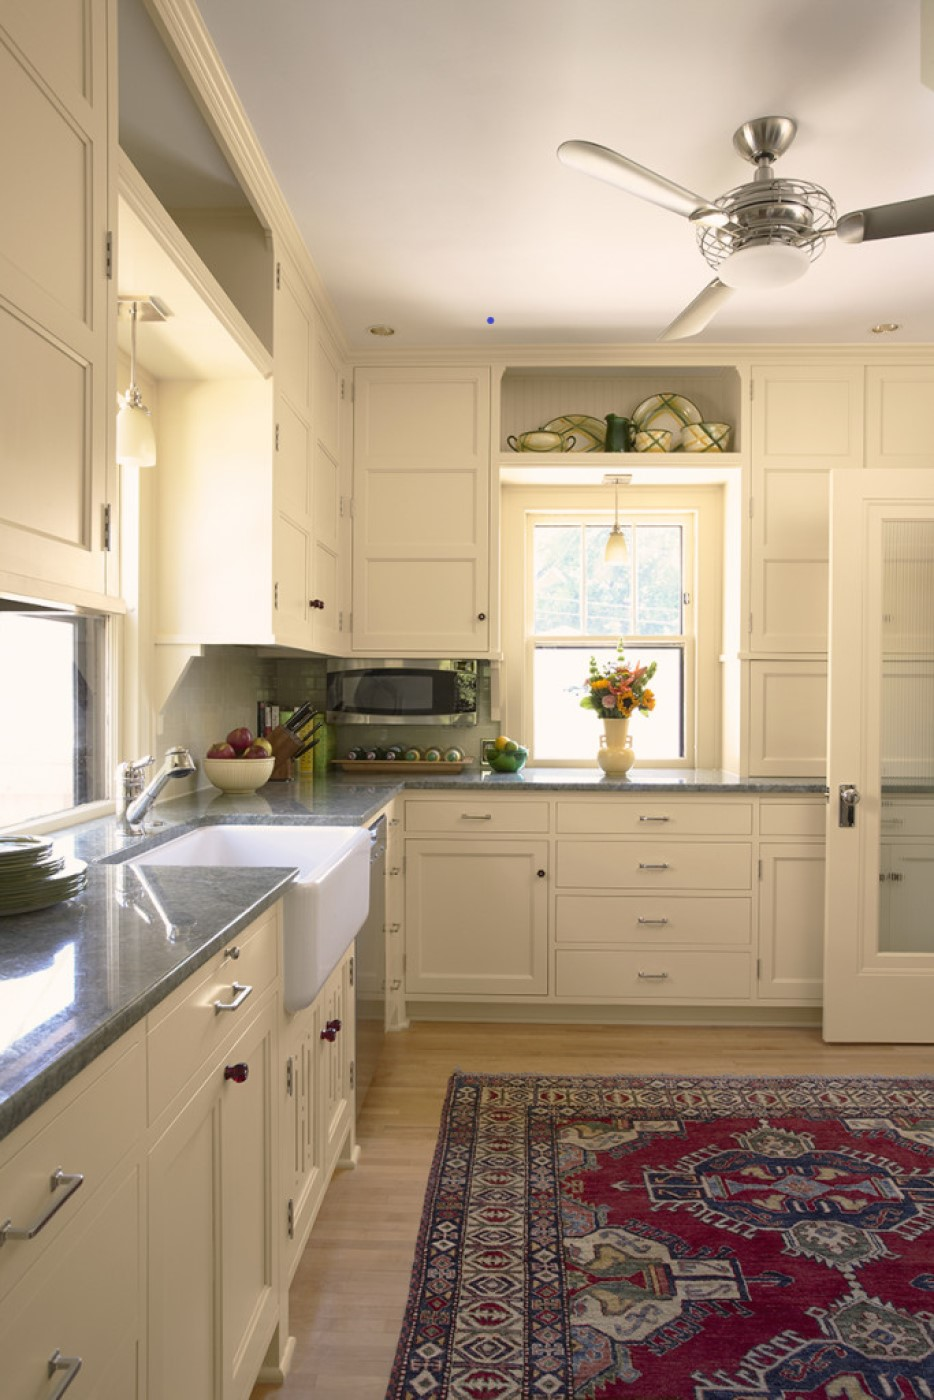 Kitchen showing ceiling fan, cream cabinetry and woodwork, gray stone counters, and hardwood floor